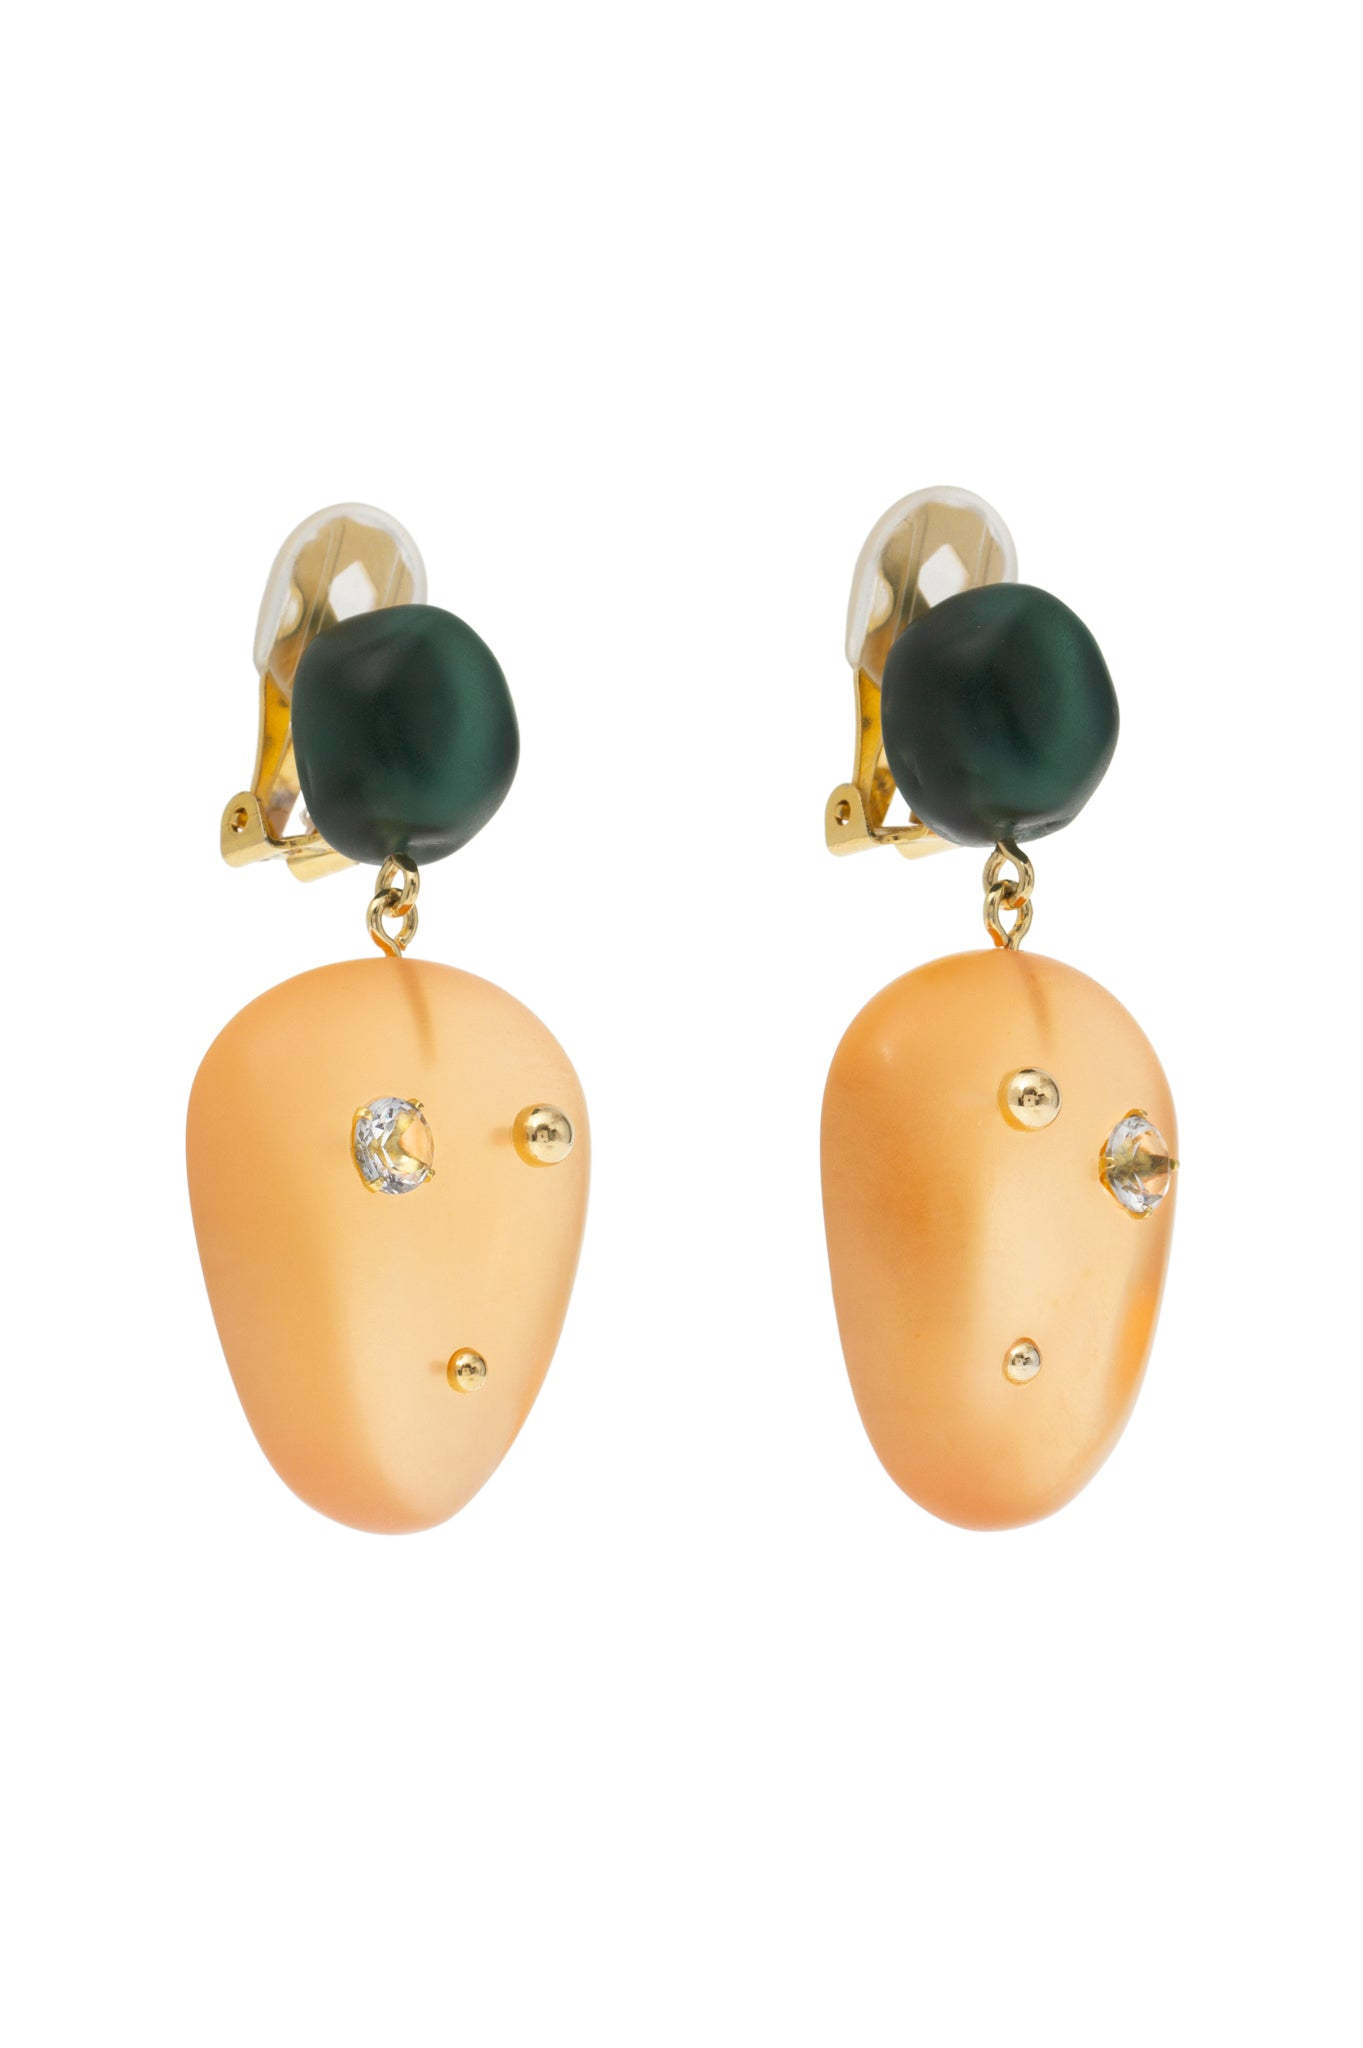 GREEN/ORANGE CAJU EARRINGS